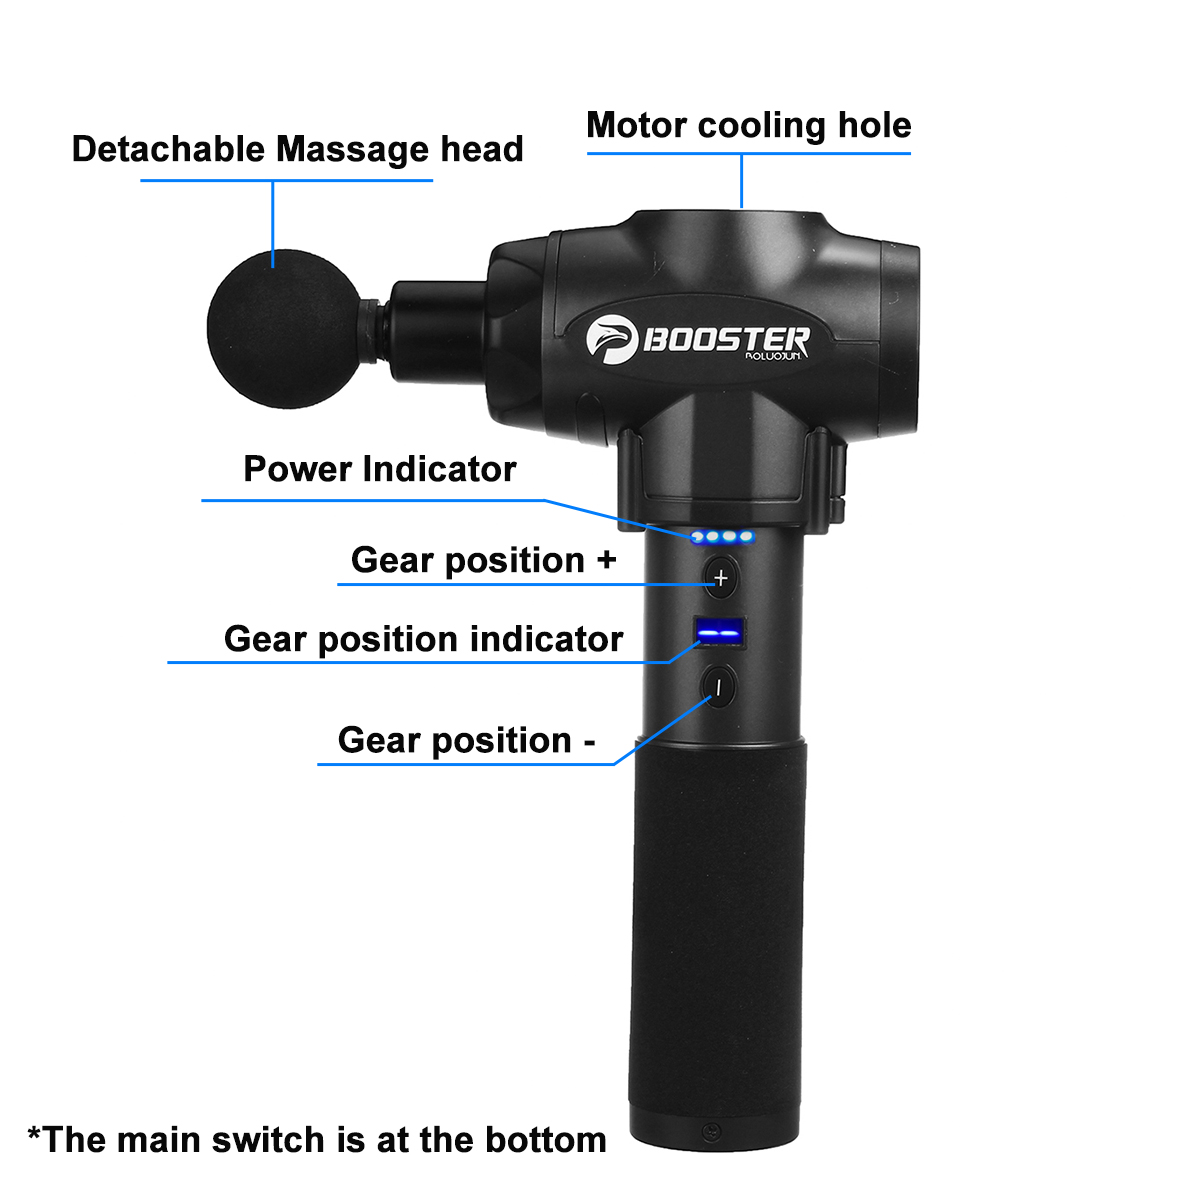 Booster 9 Gear Massage Gun Cordless Muscle Stimulator Deep Tissue Massager Device Body Relaxation Slimming Shaping Pain Relief - 3